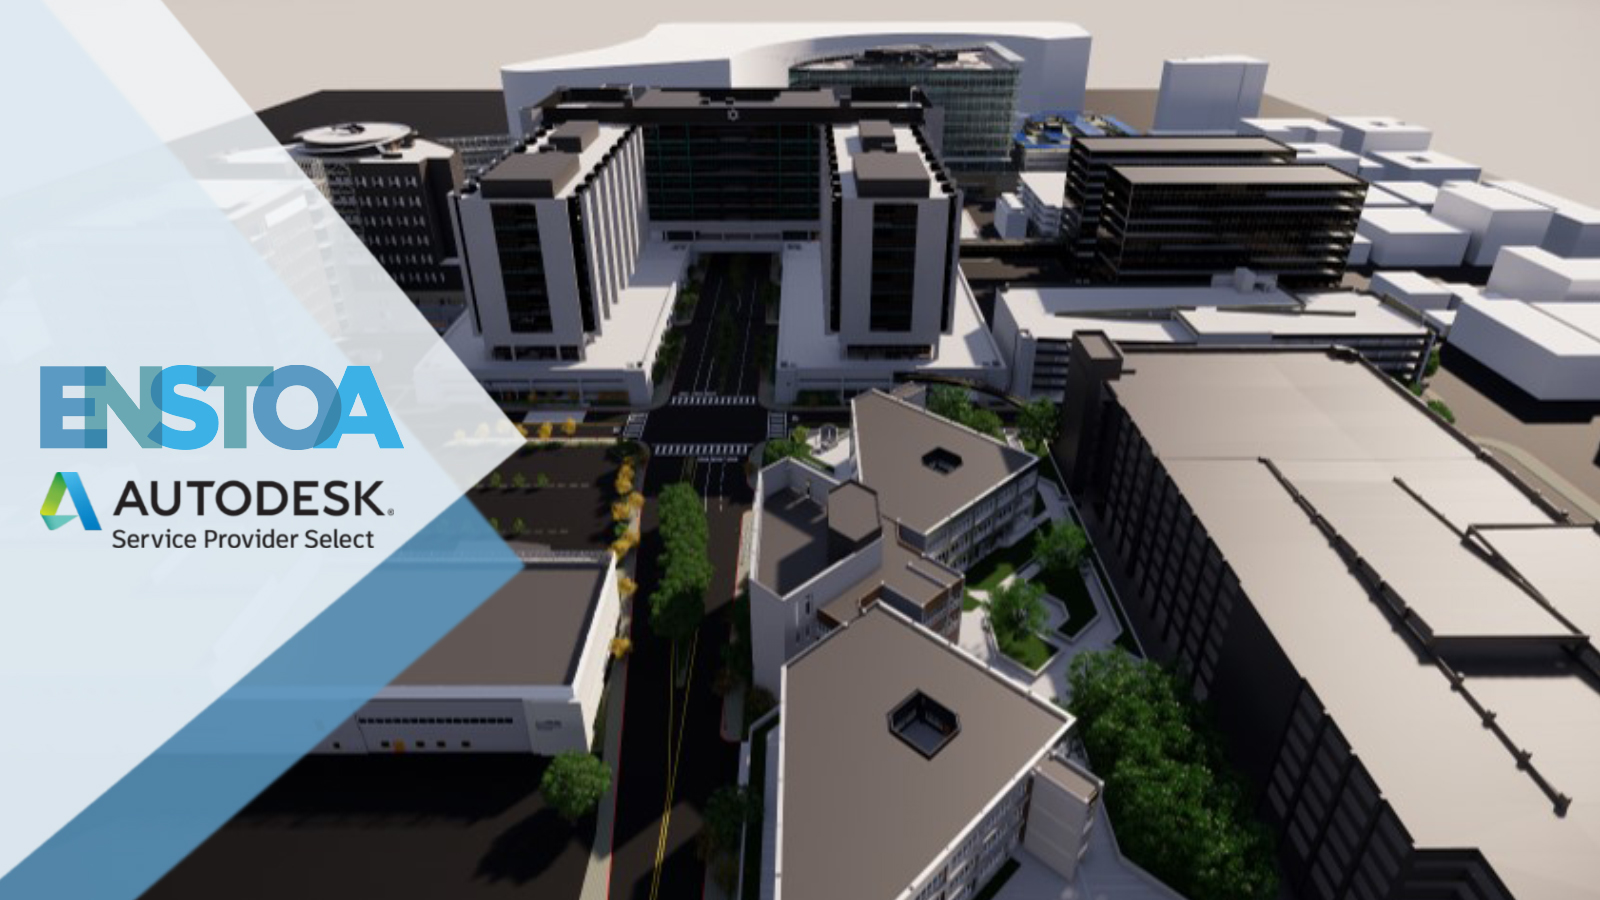 Enstoa Becomes Autodesk Services Provider Partner